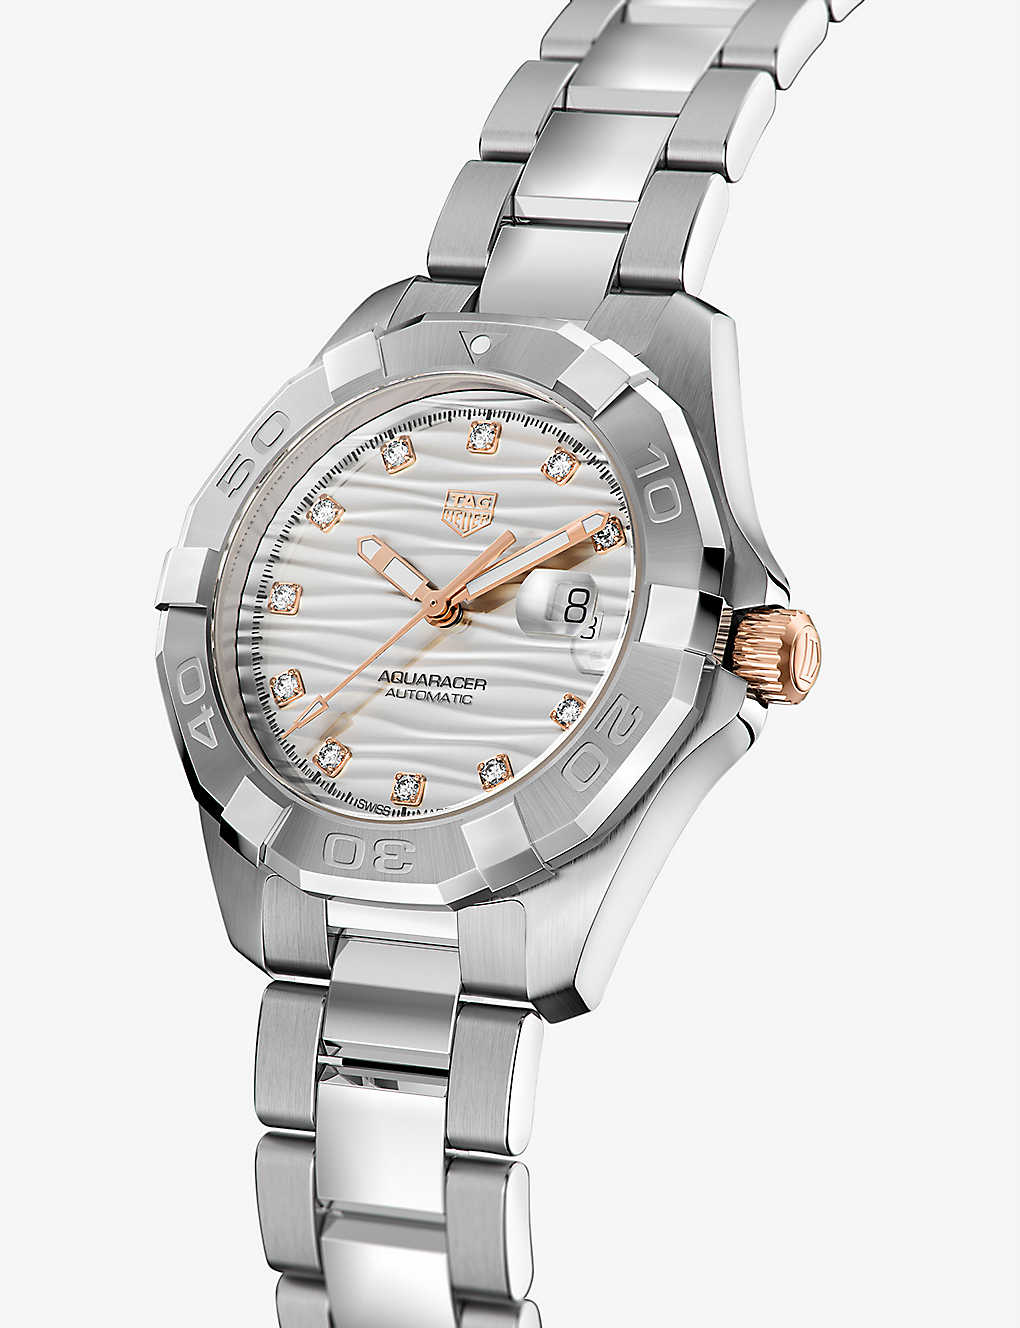 TAG Heuer Aquaracer Rose Gold & Diamond Watch for Best Entry Level Luxury Watch